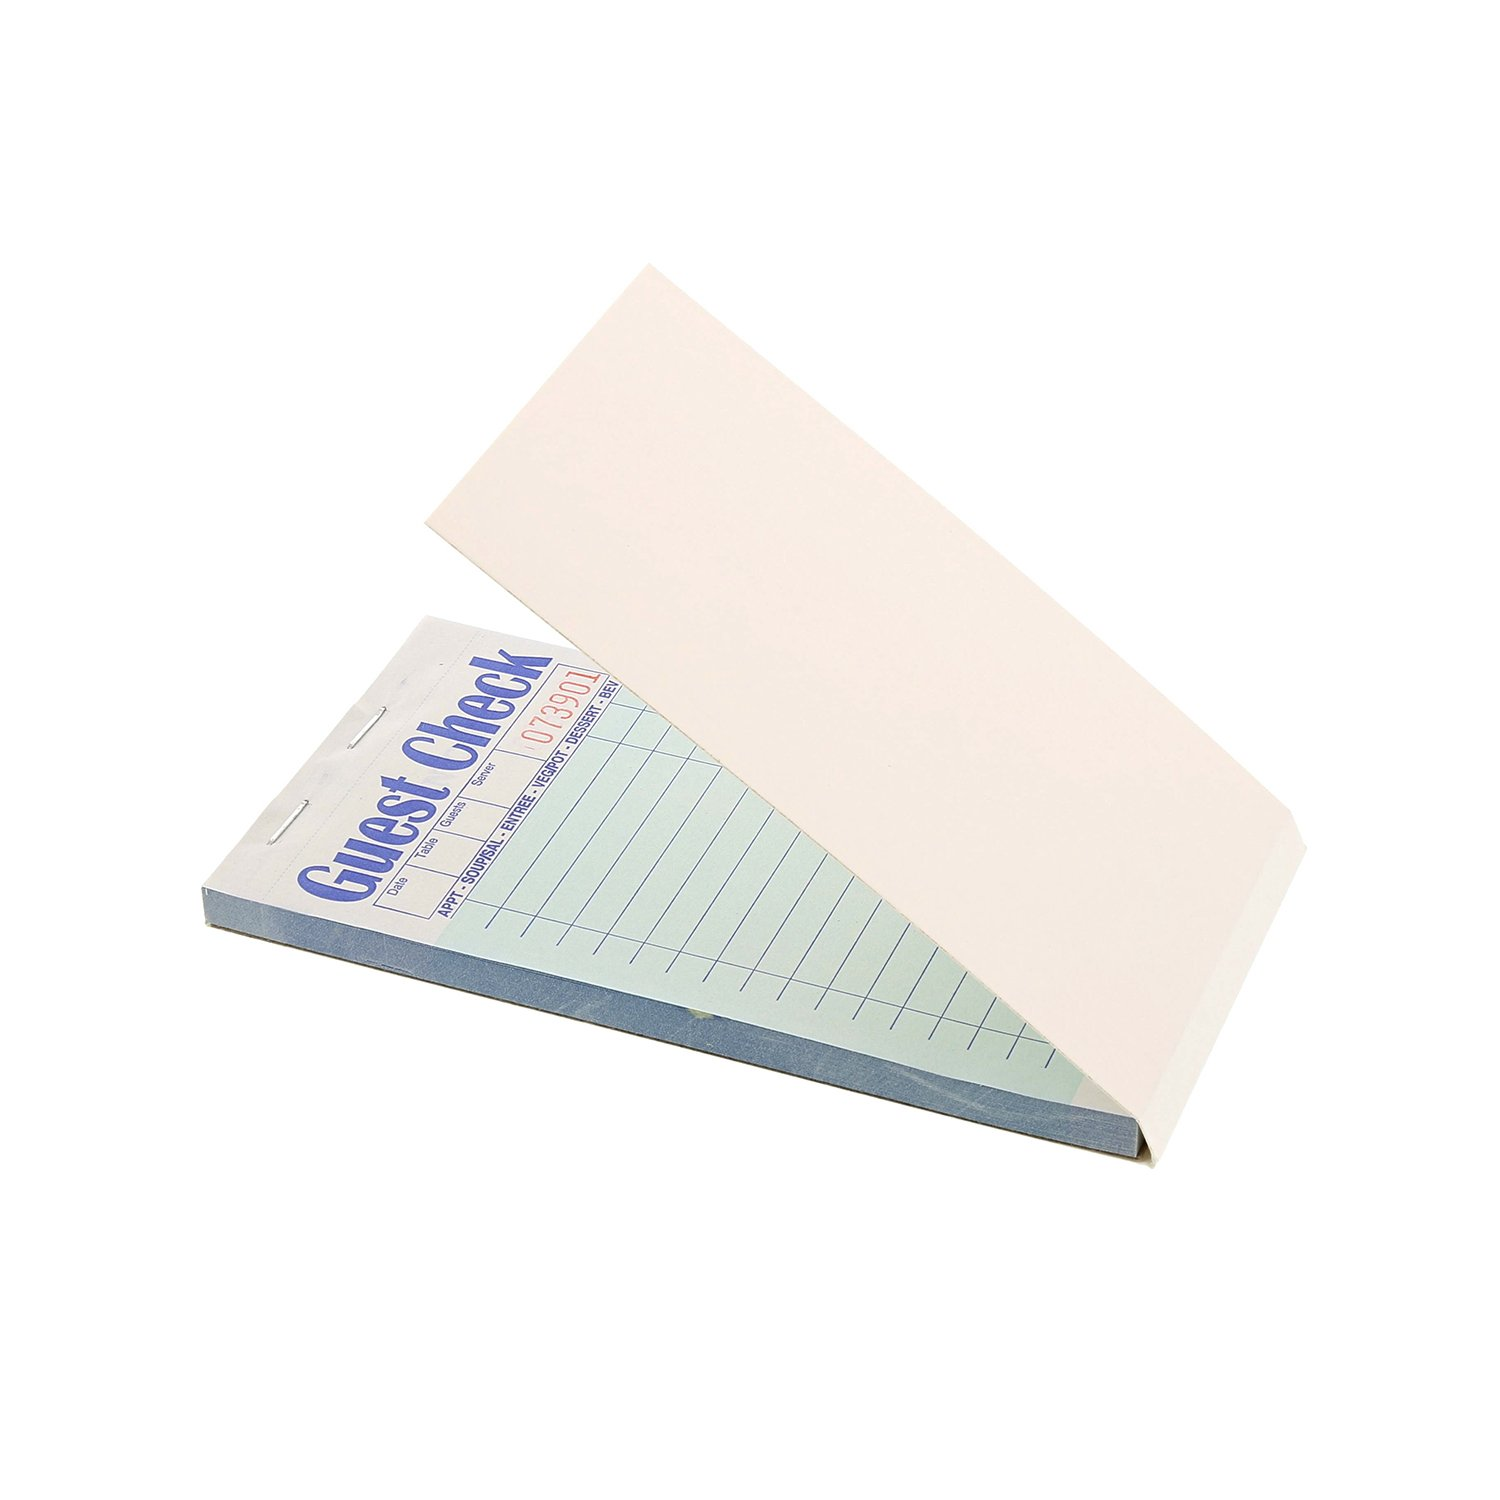 Royal Green Guest Check Paper, Carbonless with 17 Lines, 2 Part Booked, Case of 50 Books